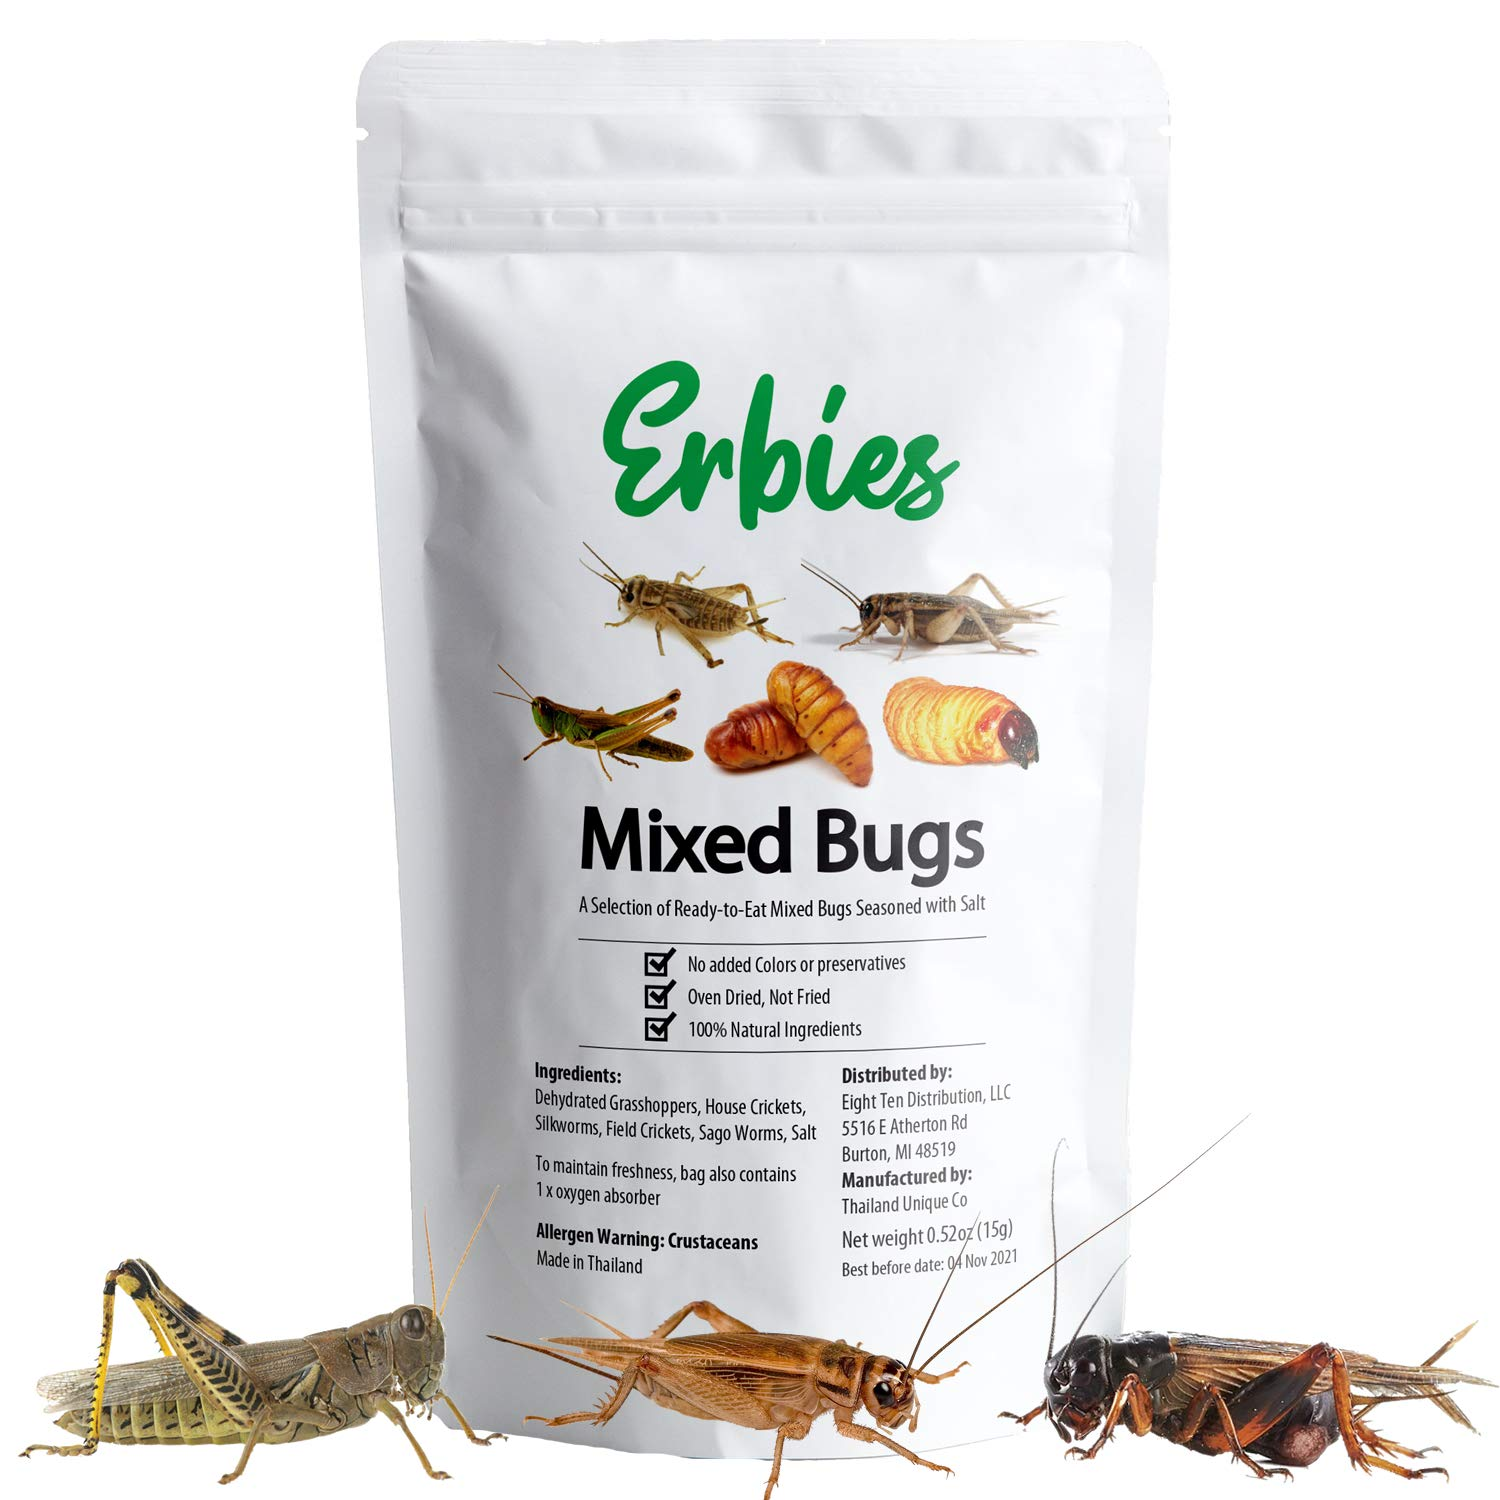 Erbies Edible Bugs Mixed Trail Mix, 15g Bag, Seasoned and Crunchy Insects, Crickets, Grasshoppers, Silkworm Pupae, and Sago Worms, Protein Packed Snack, Fun Gift Idea